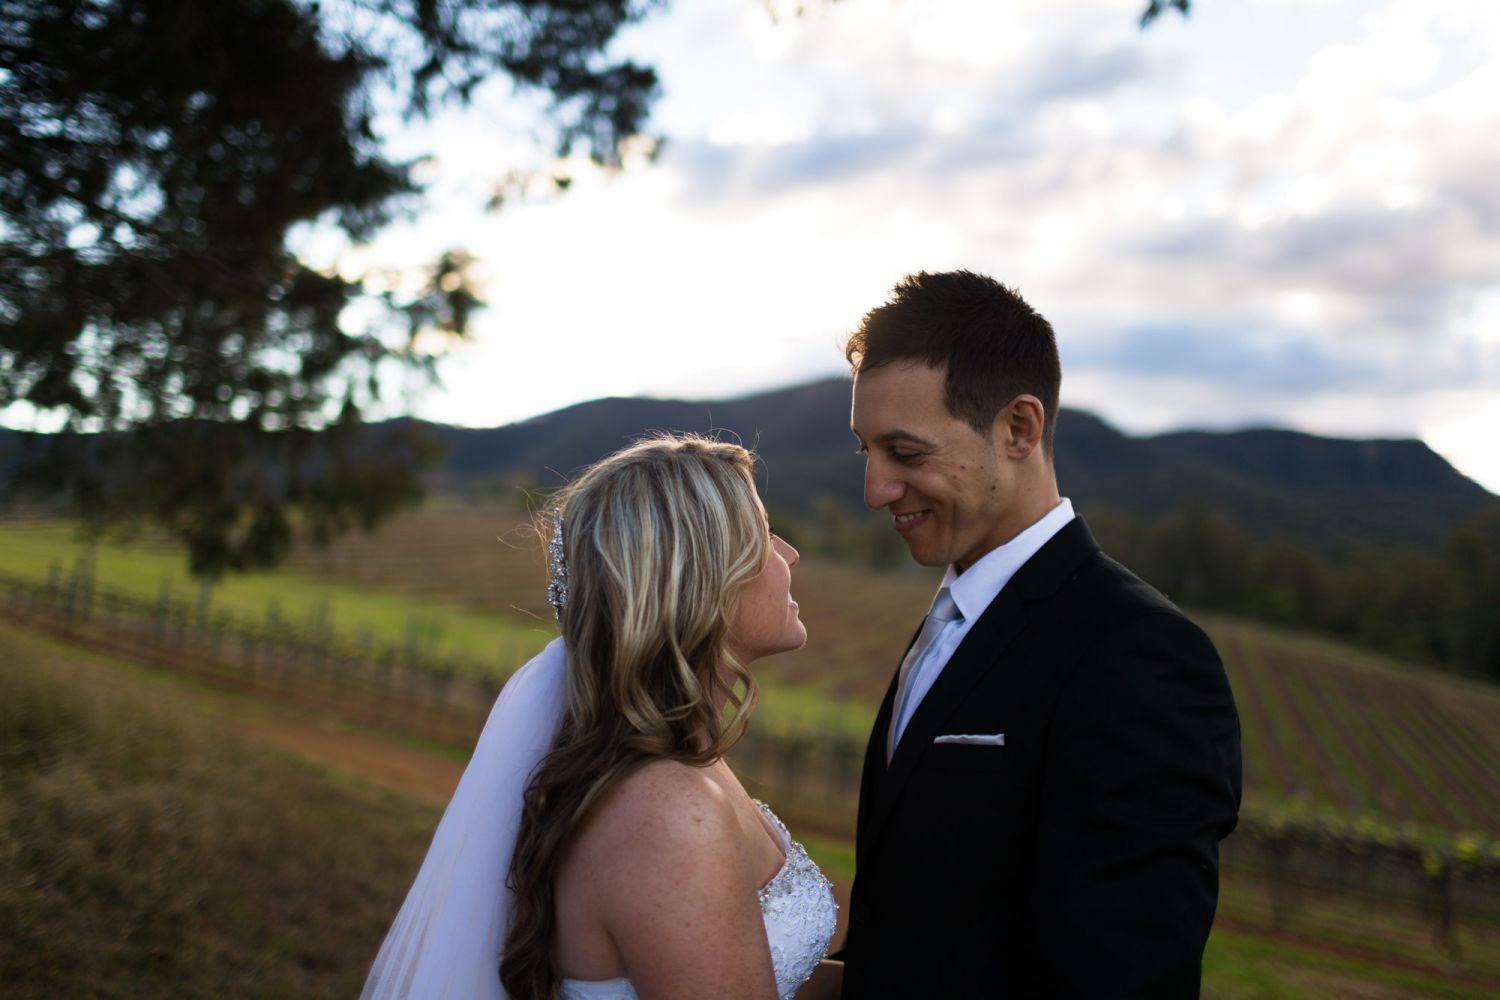 15_candid-wedding-photography-in-hunter-valley